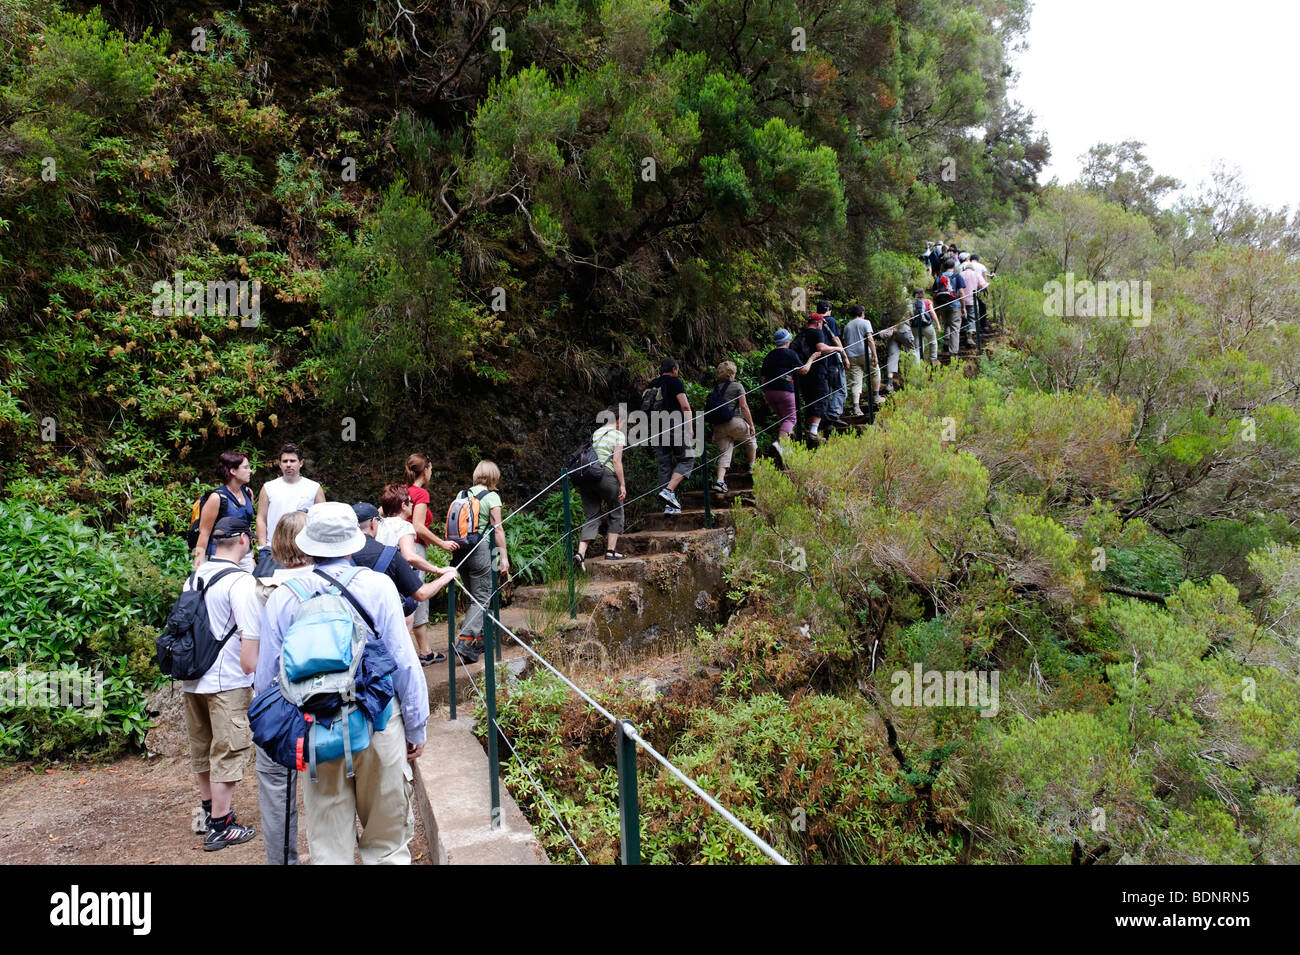 Guided hiking tour to the 25 sources, Fontes, in the Parque Natural de Madeira, Portugal, Europe - Stock Image